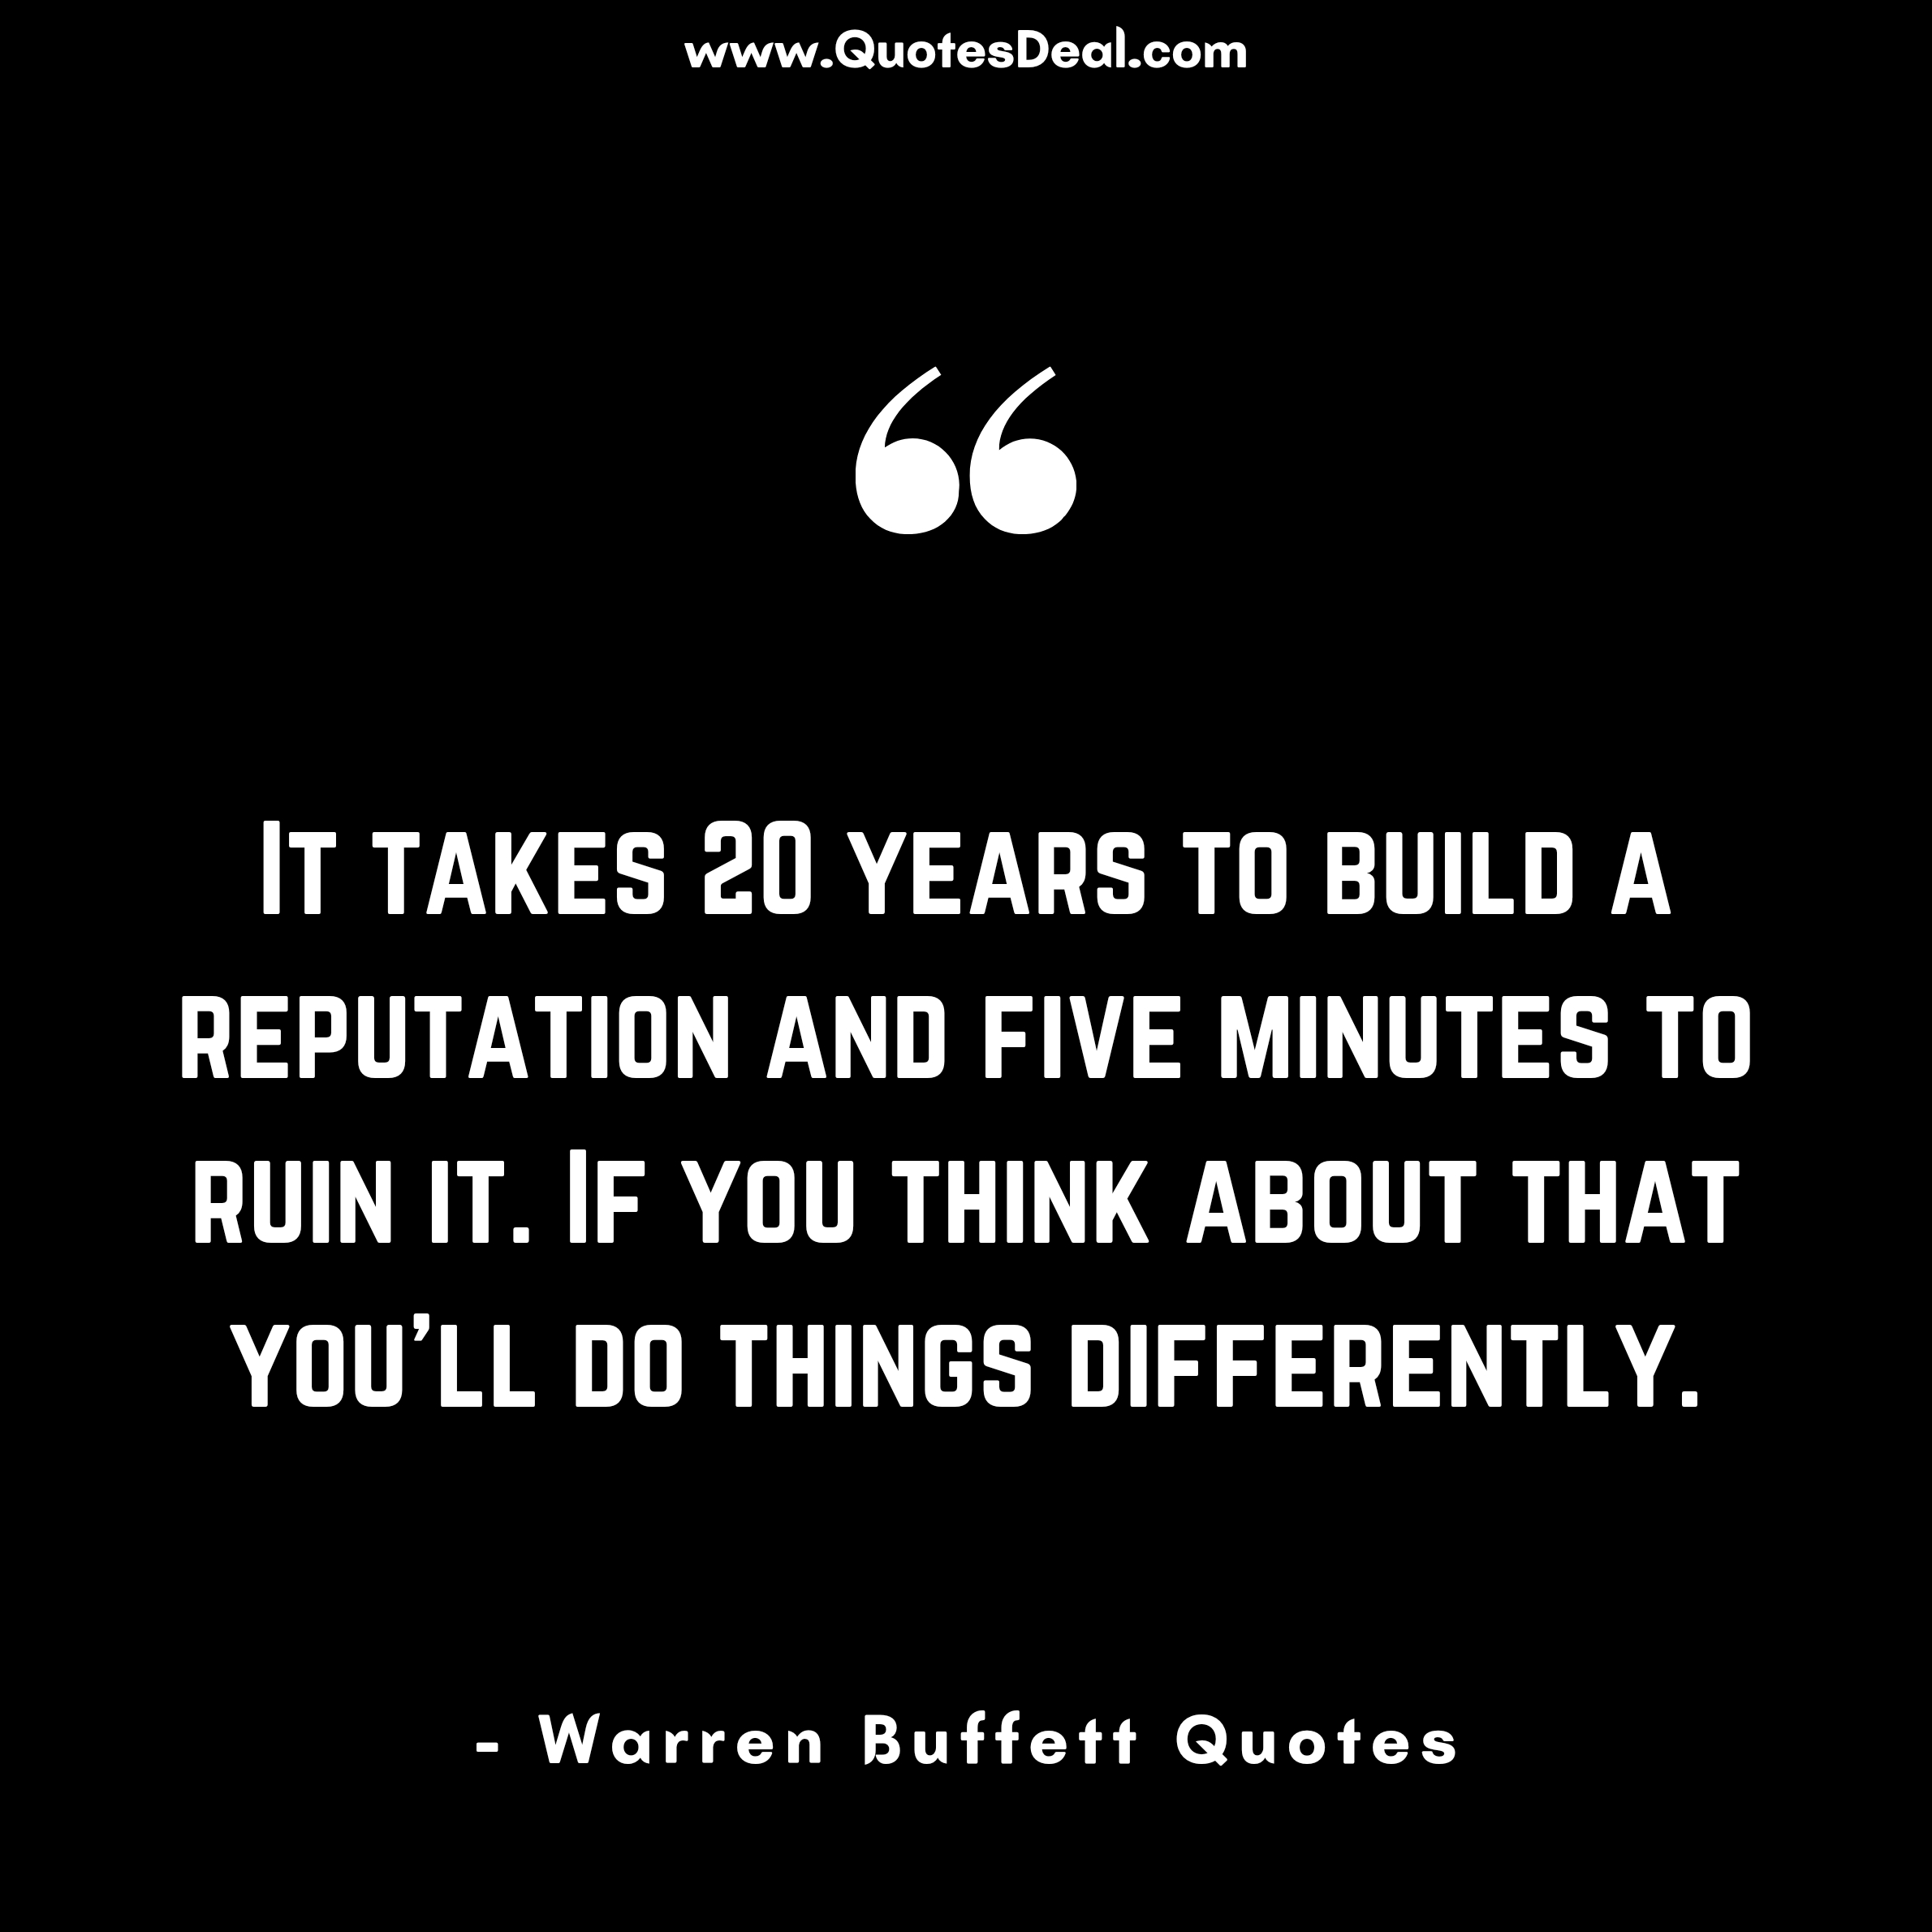 It takes 20 years to build